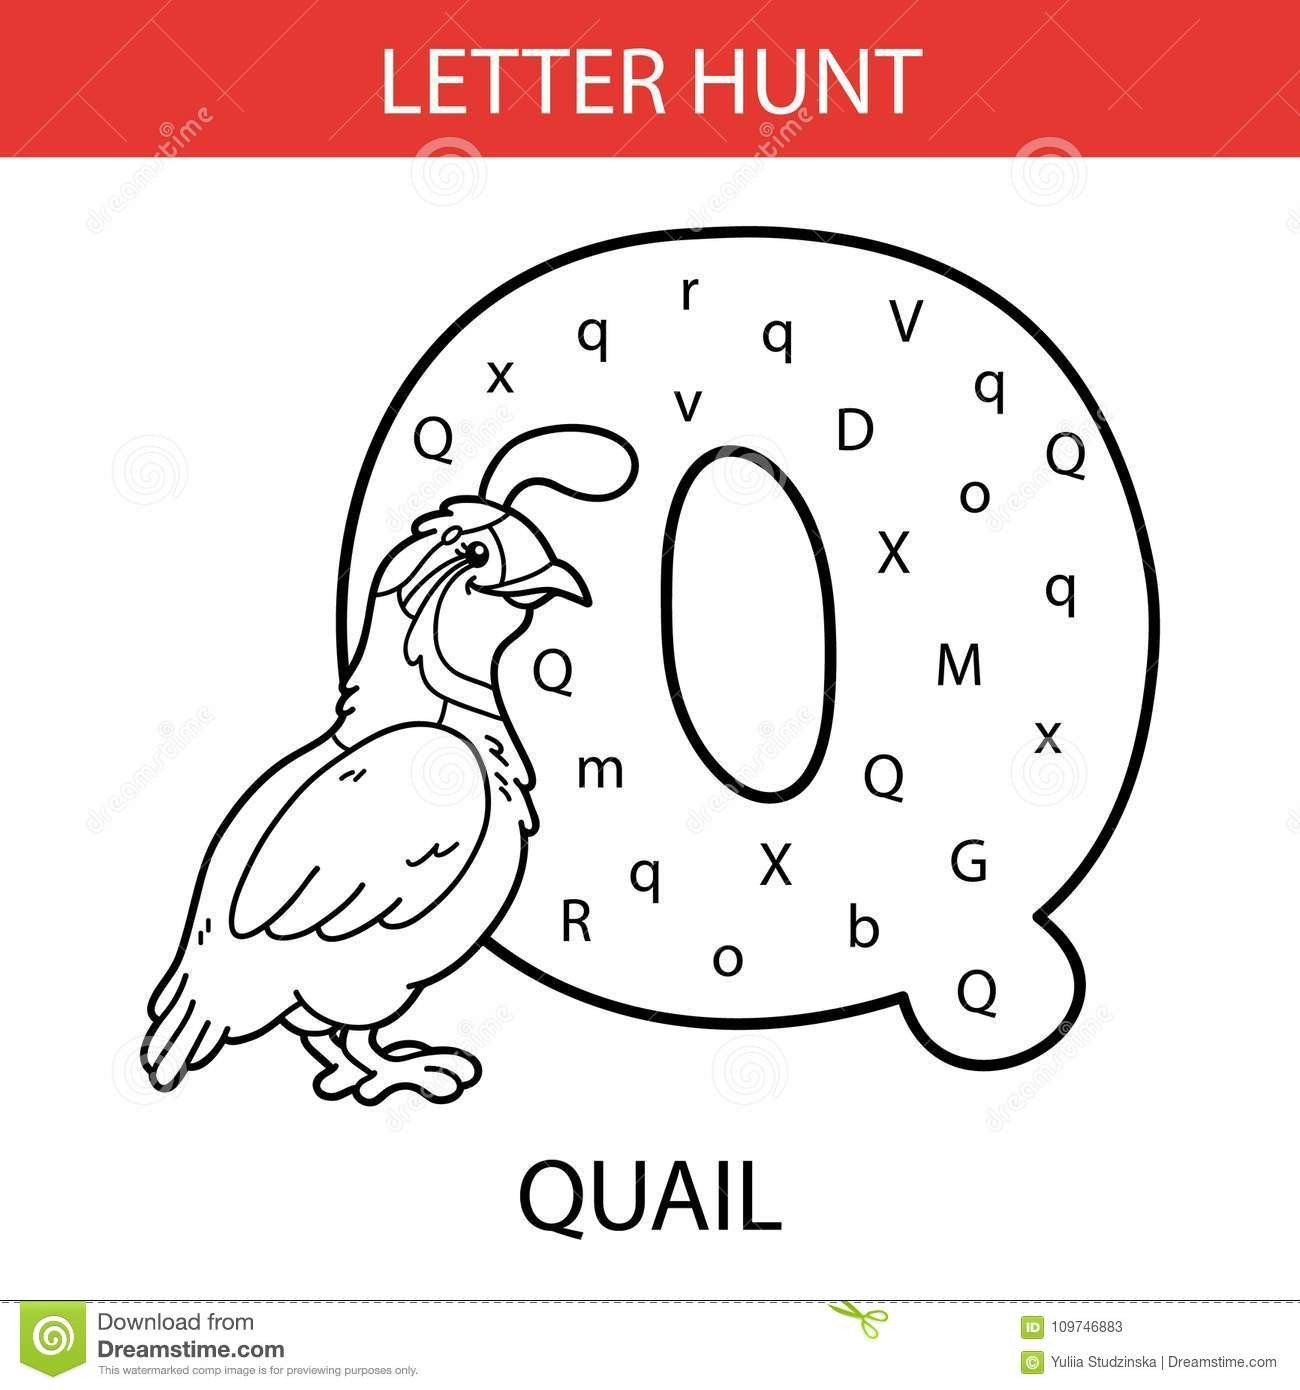 Letter Hunt Worksheet Animal Letter Hunt Quail Stock Vector Illustration Of Drawn